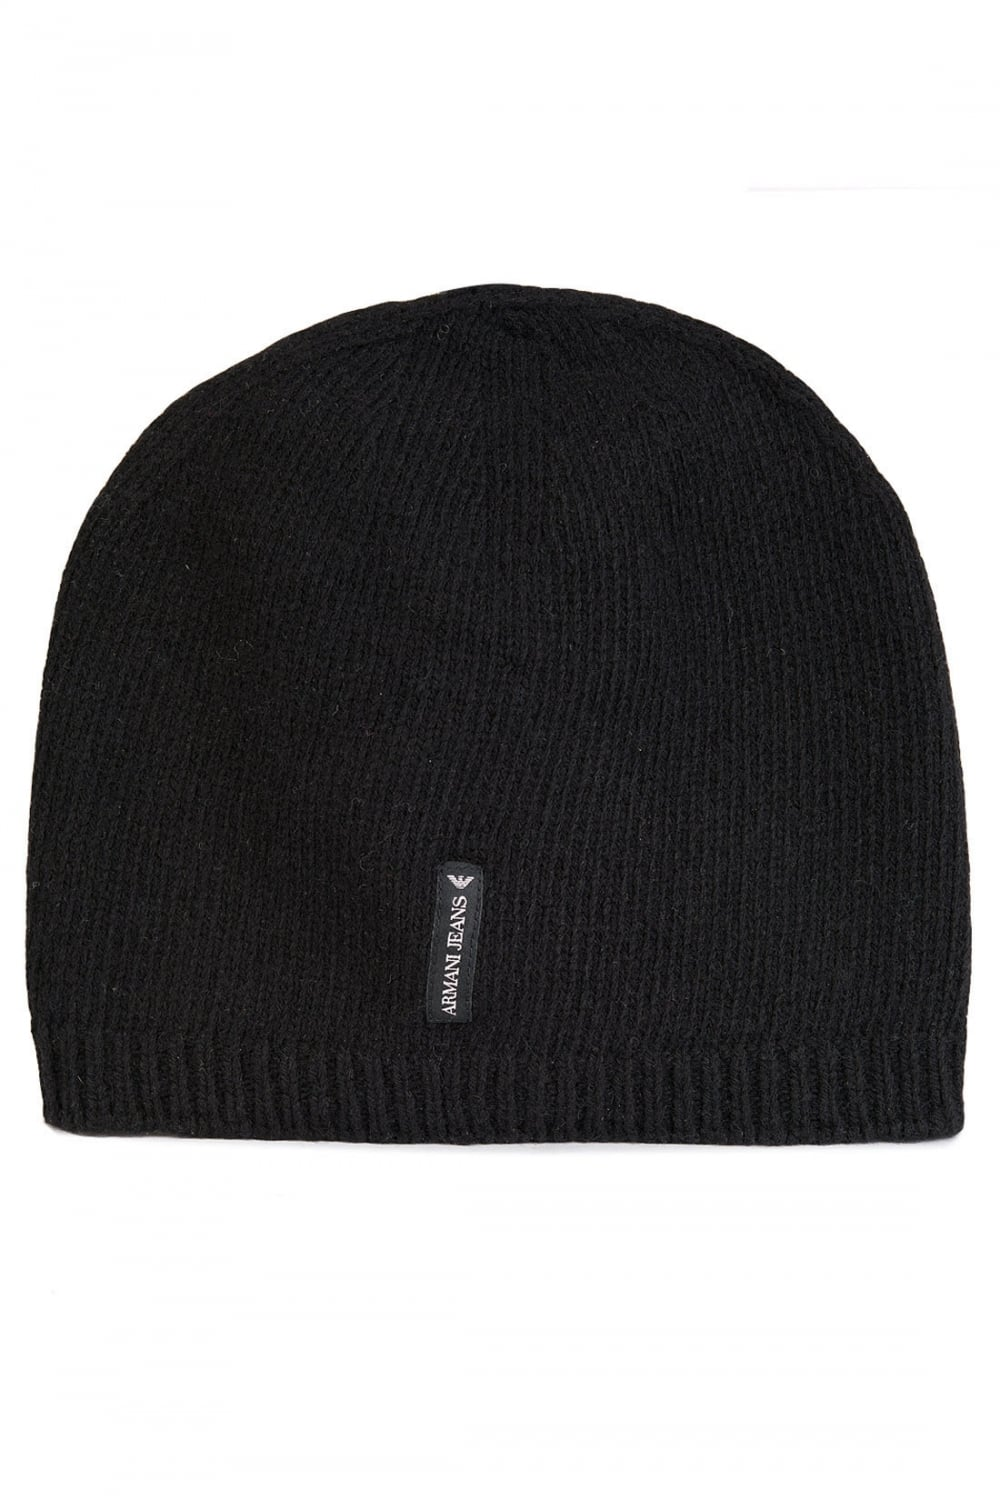 cb104b97 ARMANI Armani Jeans Tab Logo Cashmere Beanie Hat Black - Clothing from  Circle Fashion UK